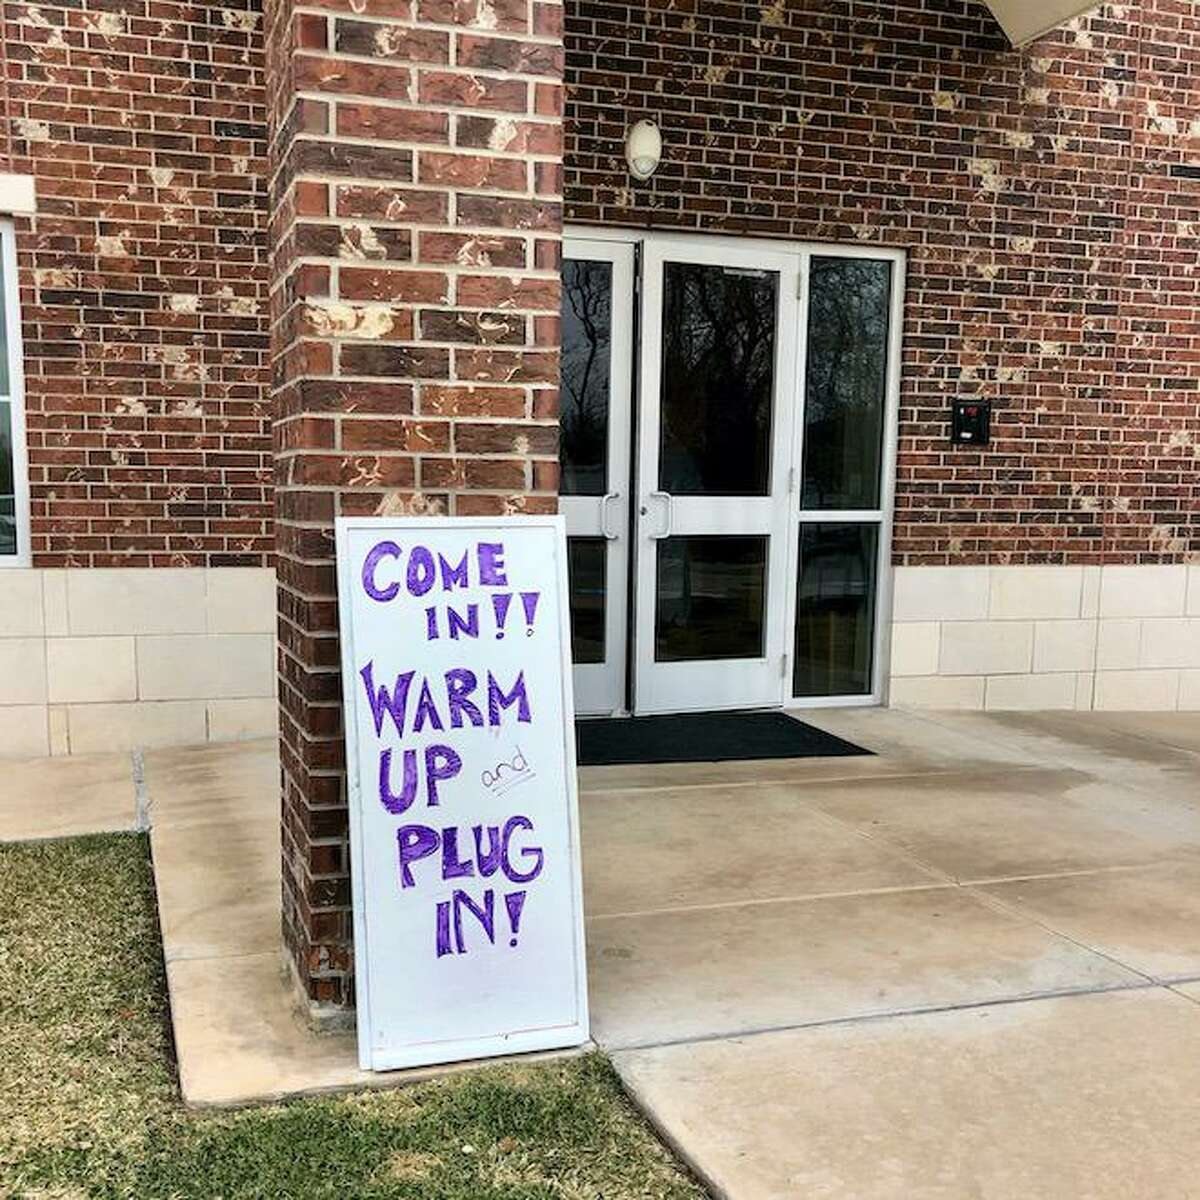 During the unprecedented freeze that forced many residents without power or water beginning Feb. 16, 2021, Harvest United Methodist Church in Missouri City opened its doors to those in need of warmth and electricity.